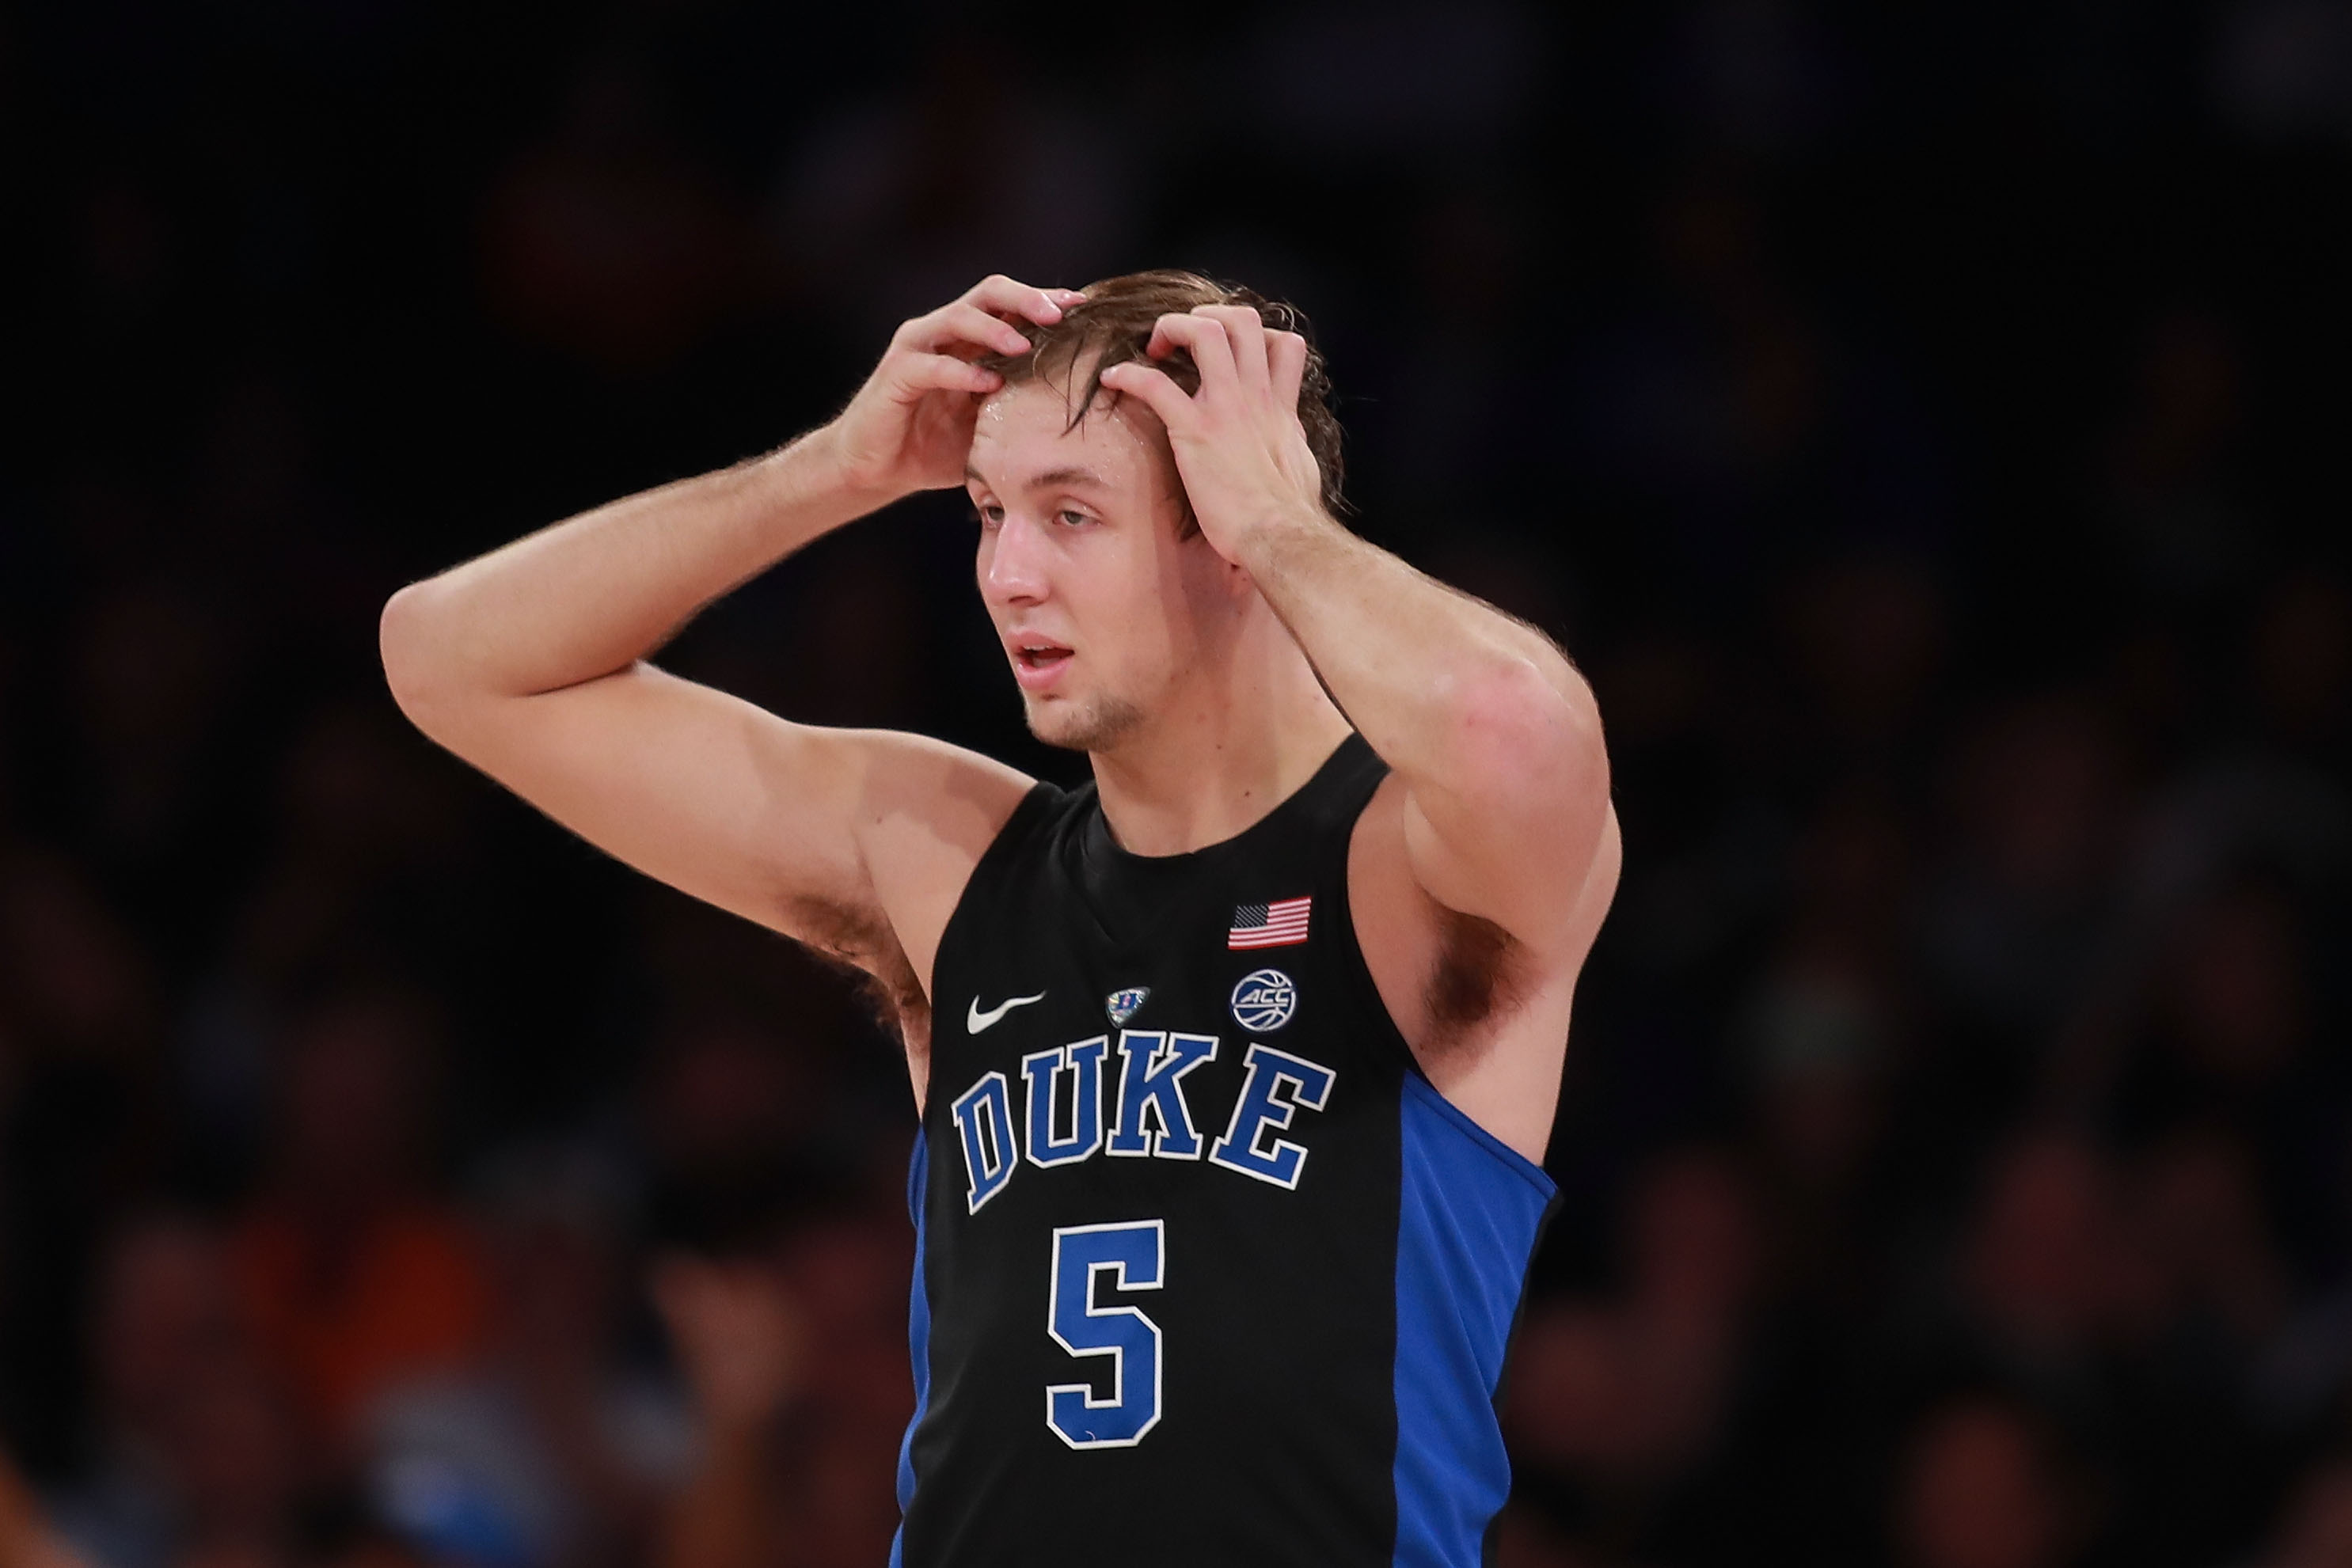 NEW YORK, NY - NOVEMBER 15:  Luke Kennard #5 of the Duke Blue Devils reacts against the Kansas Jayhawks in the second half during the State Farm Champions Classic at Madison Square Garden on November 15, 2016 in New York City.  (Photo by Michael Reaves/Getty Images)